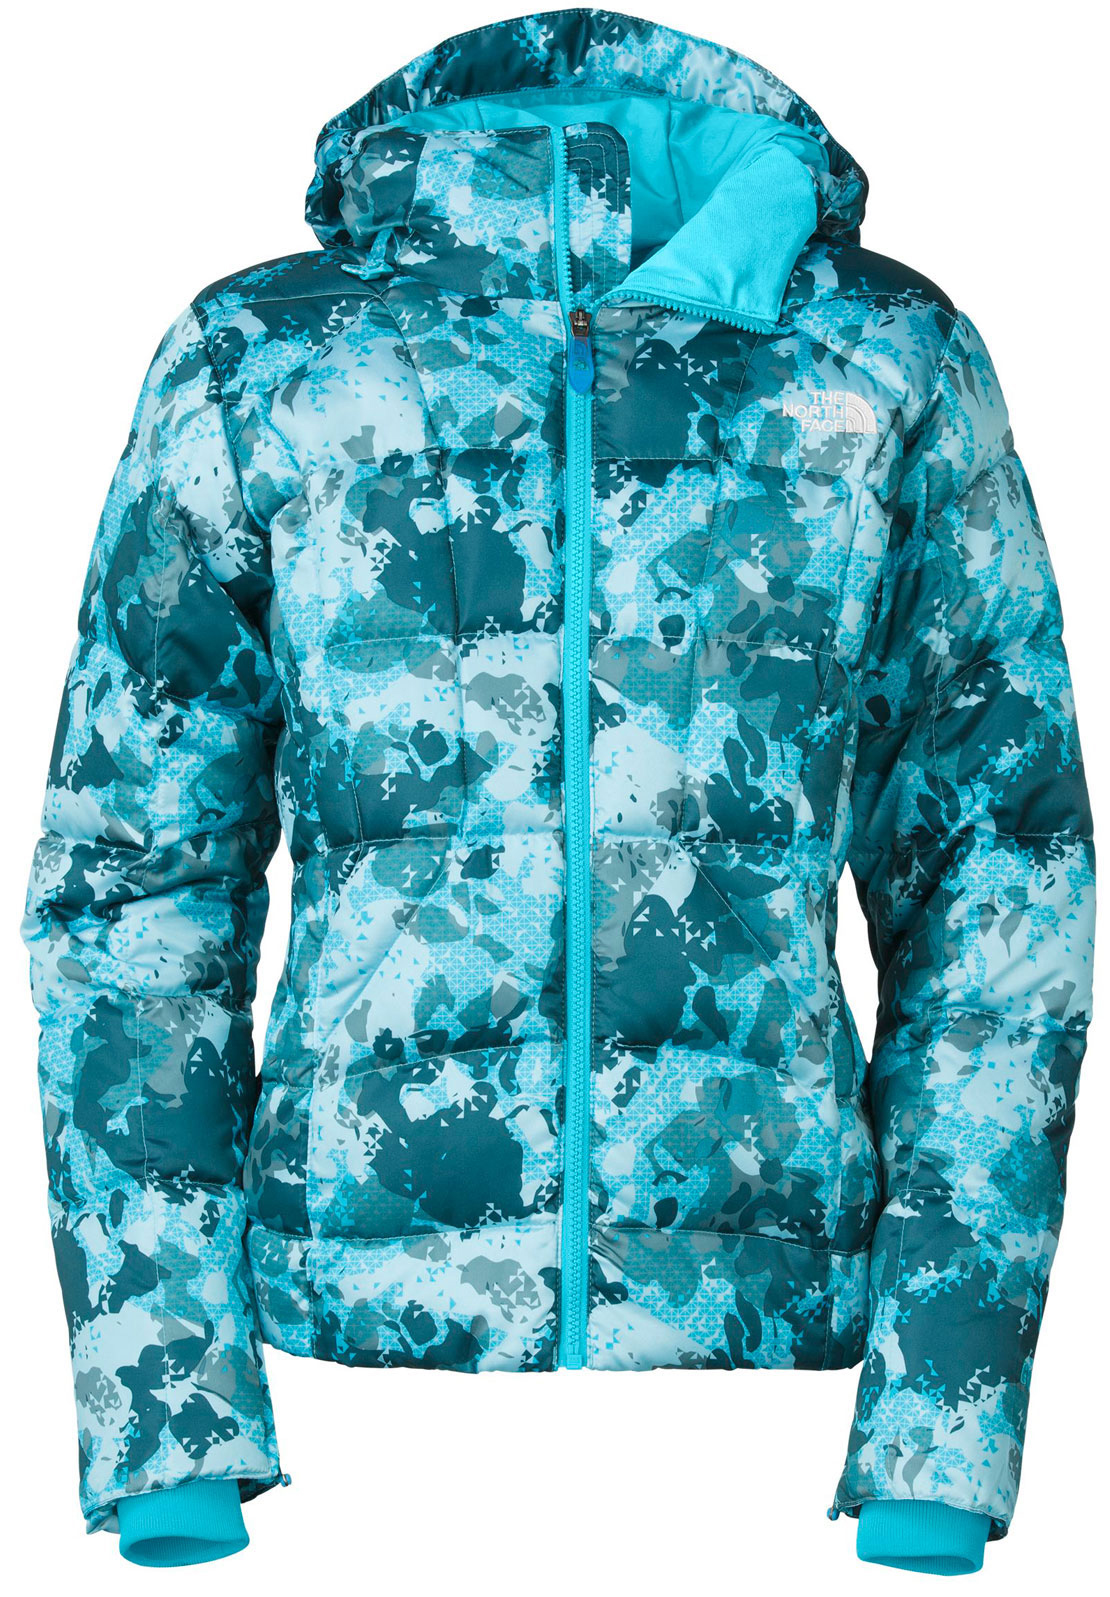 "Ski Quilted down insulation in an elegant jacket built for optimal warmth; with an eye-catching camo print and recycled taffeta lining that slides easily over layers.Key Features of The North Face Destiny Down Novelty Ski Jacket: Avg Weight: 863 g (30.44 oz) Center back: 24"" Fabric: shell: 30D 45 g/m2 floral print nylon twill Lining: recycled taffeta Insulation: 550 fill down Water-resistant, breathable Adjustable fully featured fixed hood Handwarmer zip pockets Internal media security pocket Internal goggle pocket Zip sleeve cuff with gussets Internal ribbed cuffs Powder skirt Adjustable hem system Goggle cloth on right pocket - $173.95"